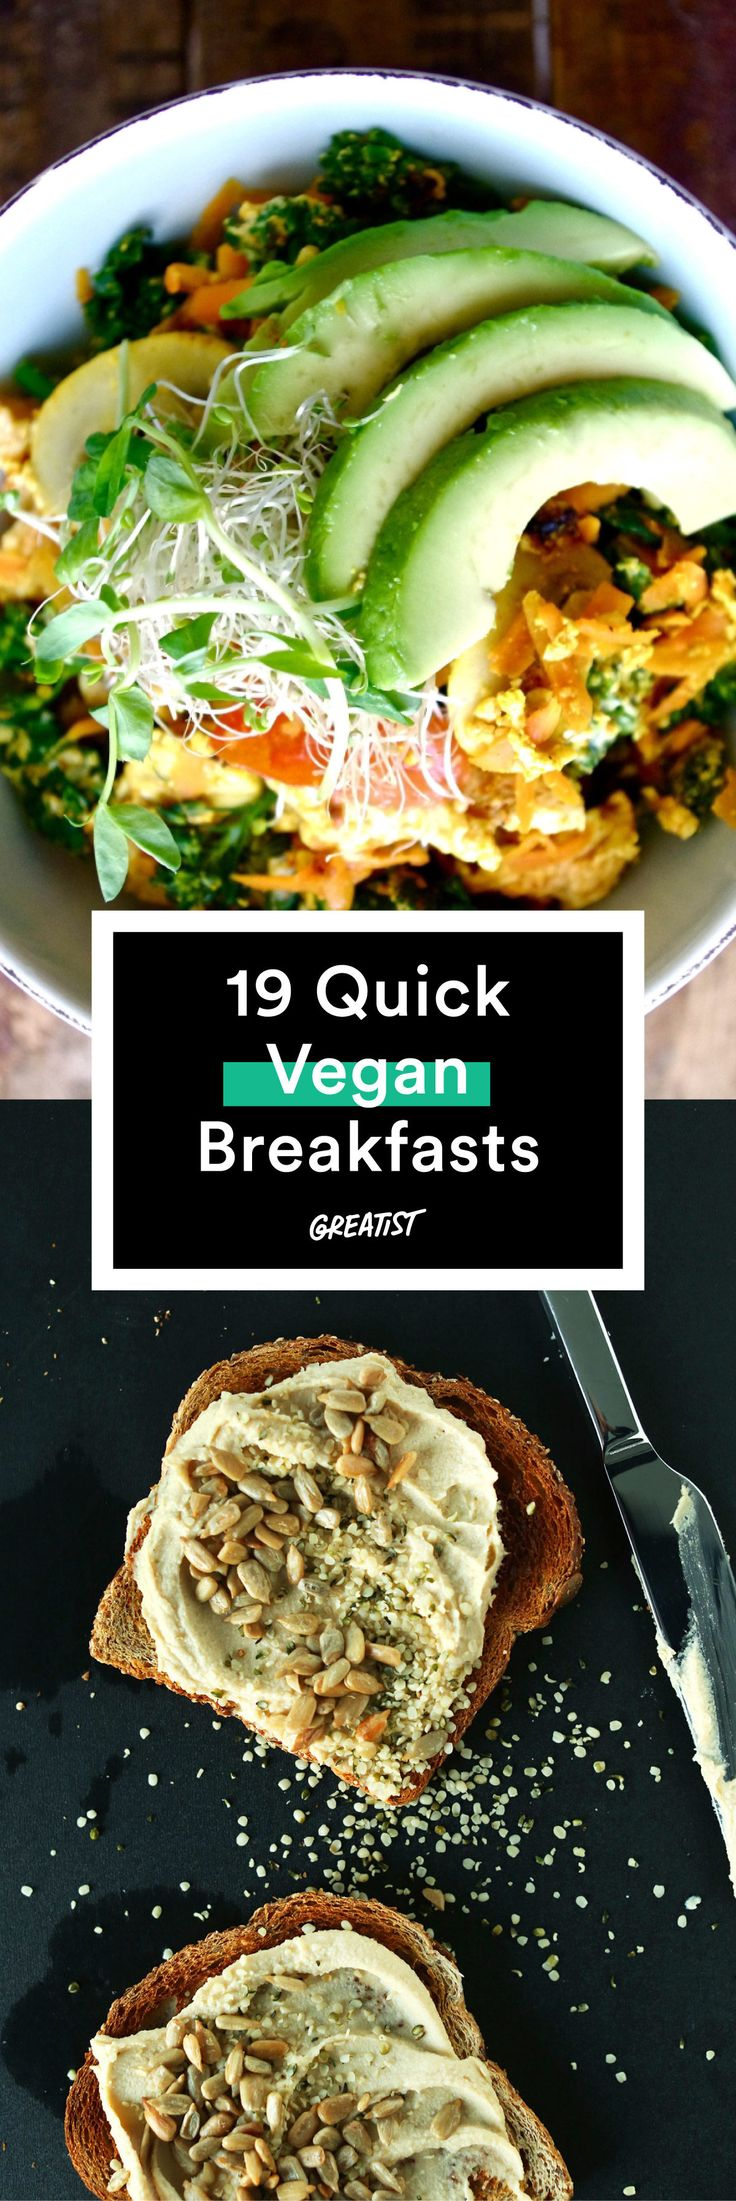 19. Quick Apple Sweet Potato Hash http://greatist.com/eat/vegan-breakfast-recipes-you-can-make-15-minutes-or-less